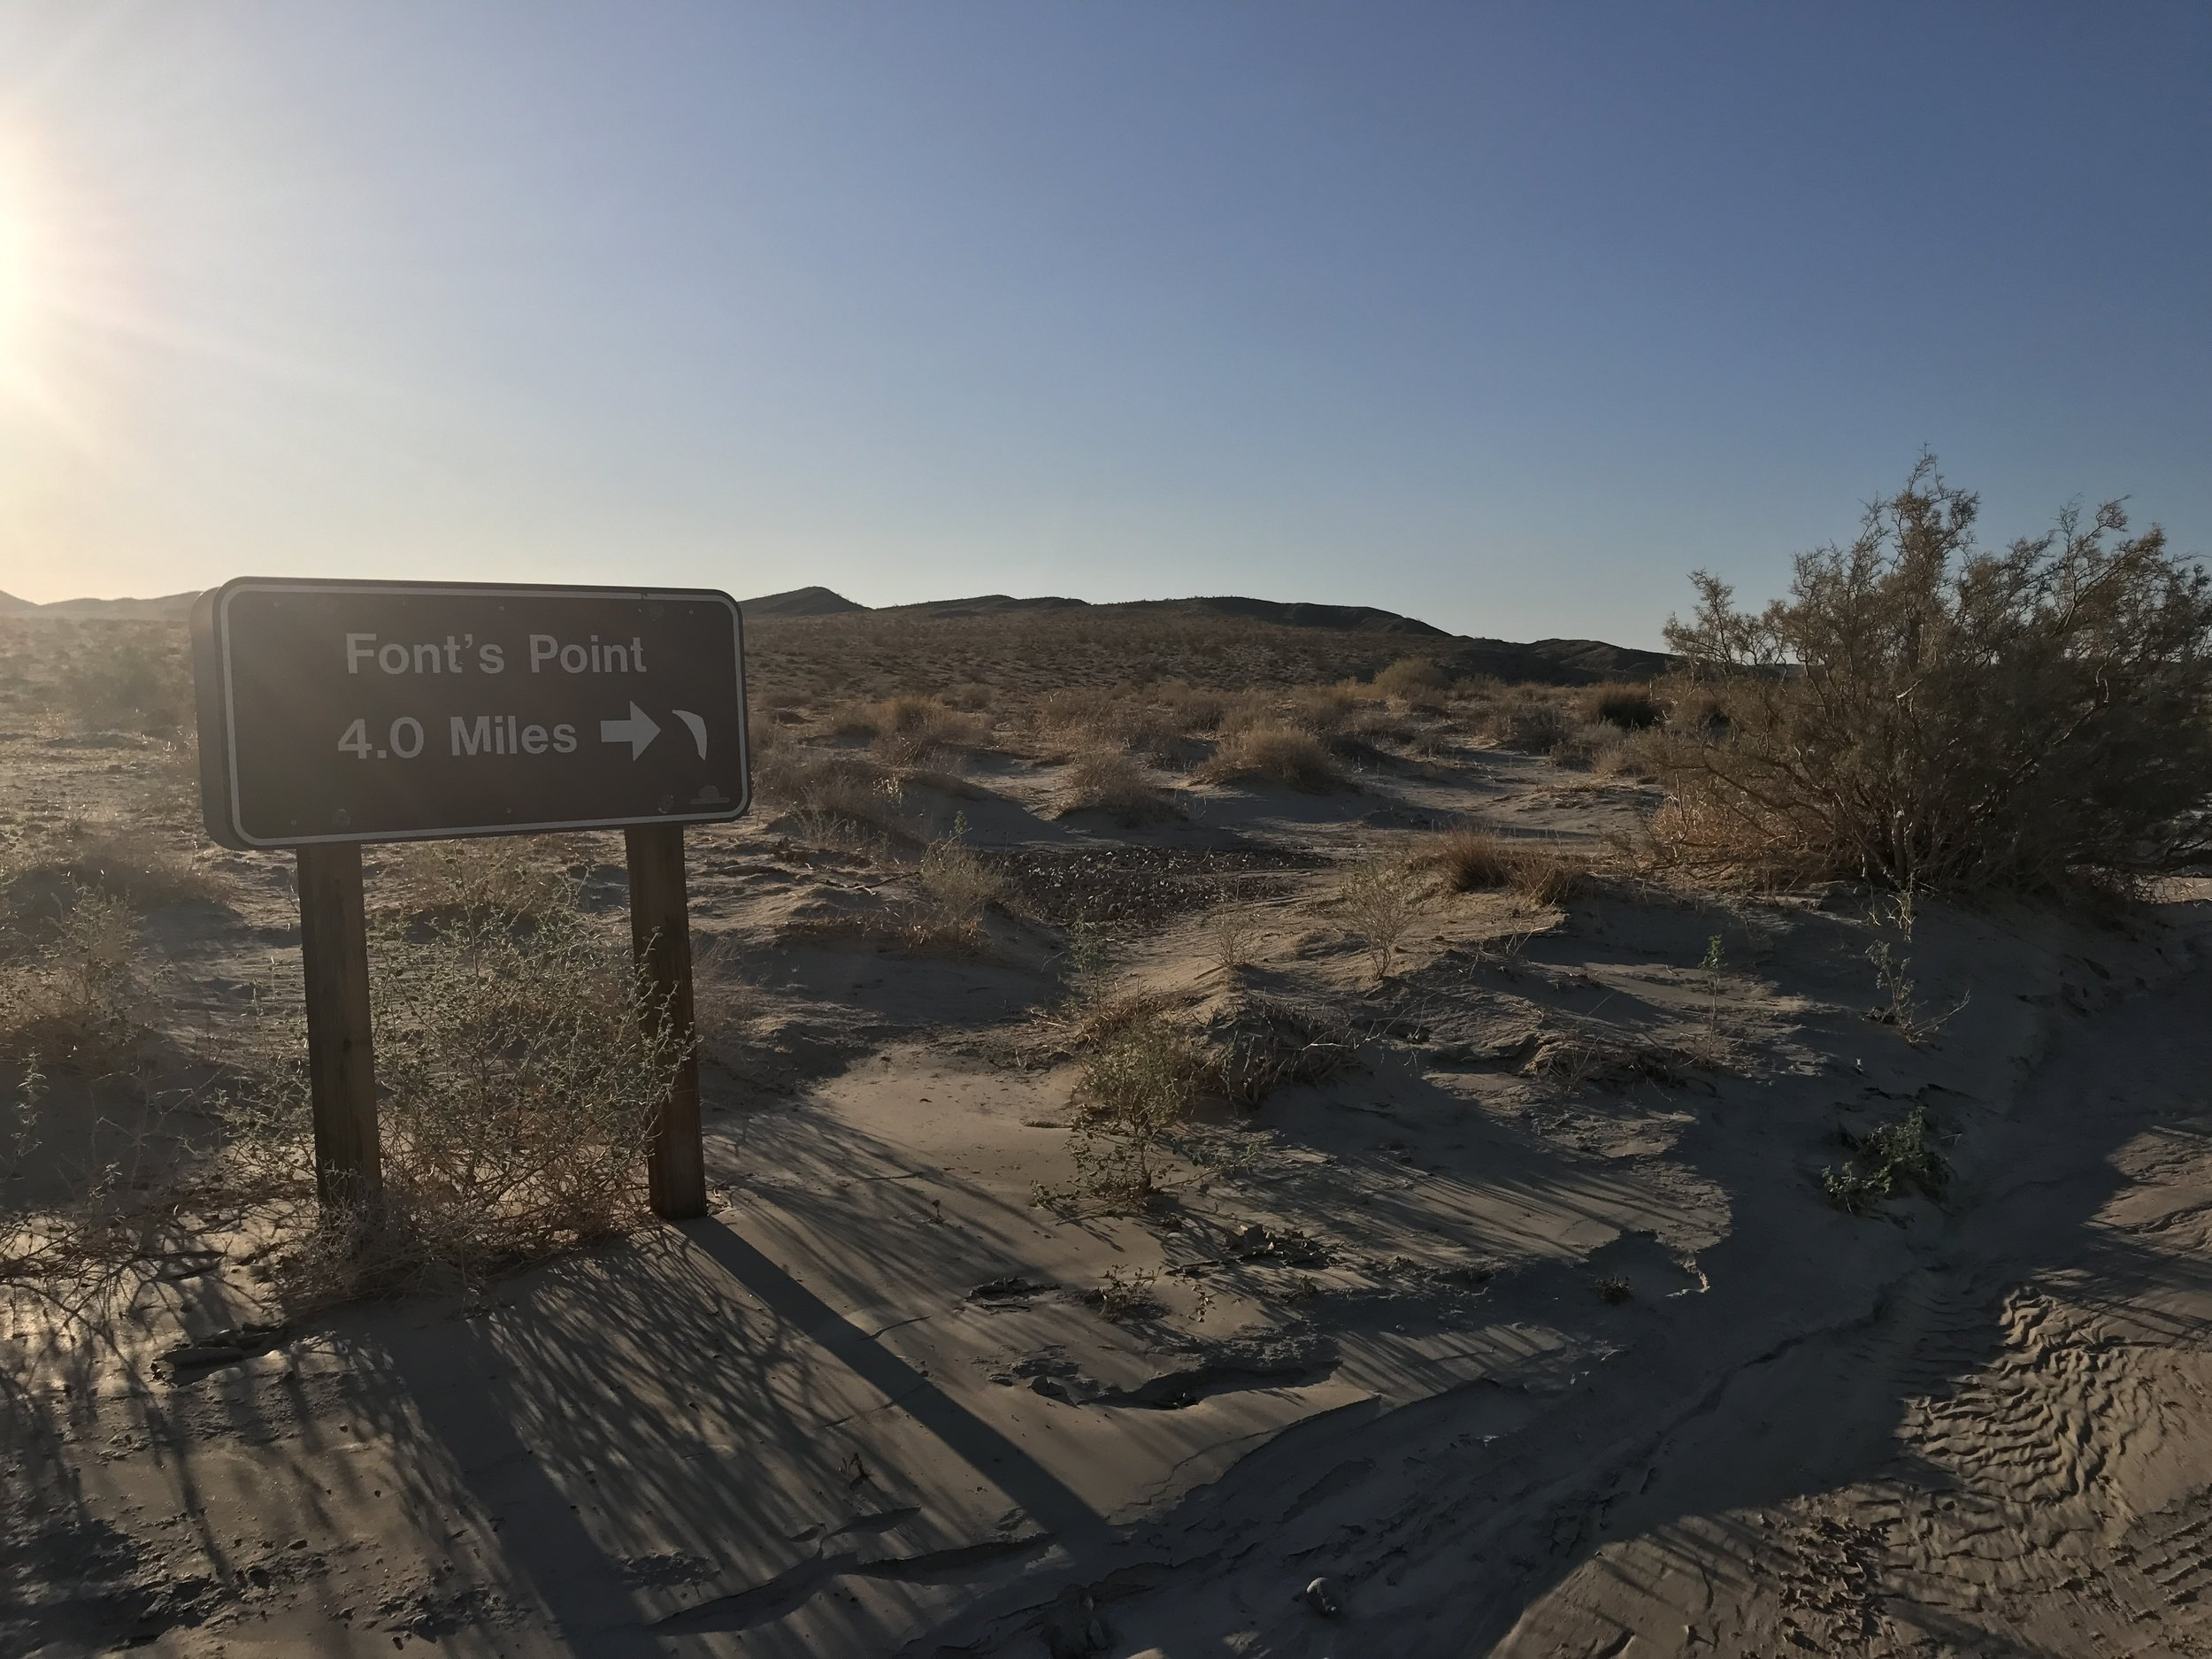 To get to Font's Point, one must either hike, or drive off-road for over four miles.